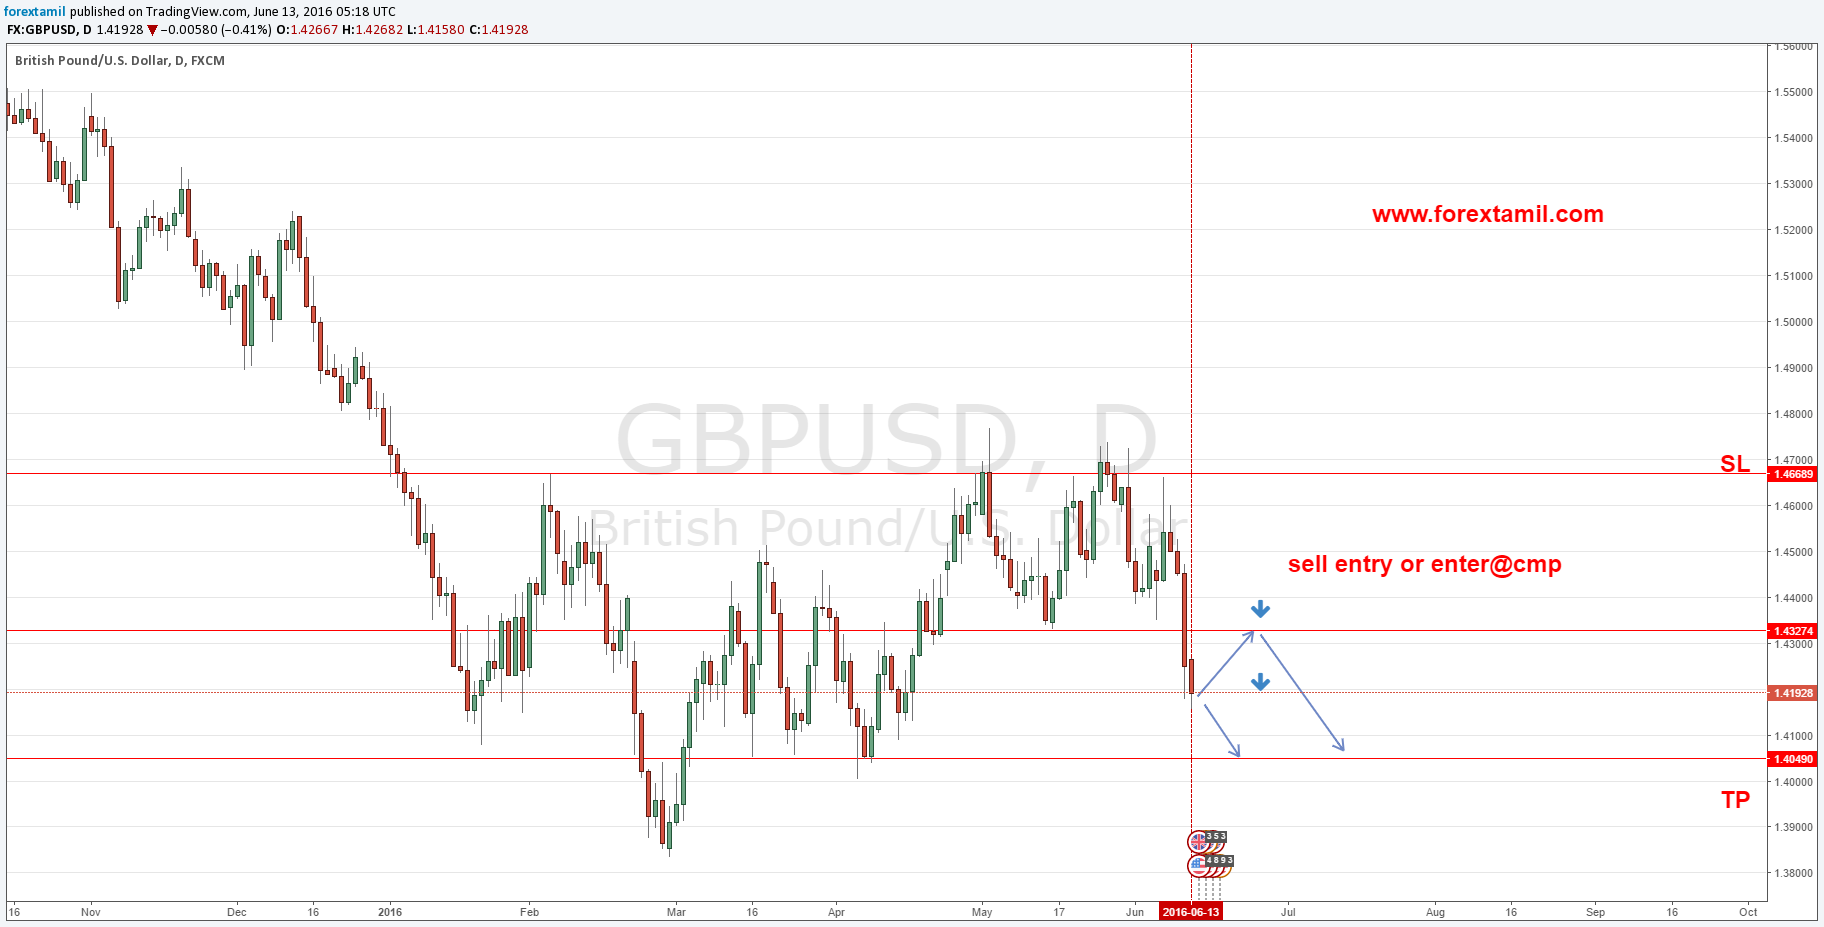 SELL GBP/USD|Forex strategy in tamil, Currency Exchange Market Level Training, TAMIL Trading, Forex Trading course, chennaiforextraining, Tamil-Forex-Training